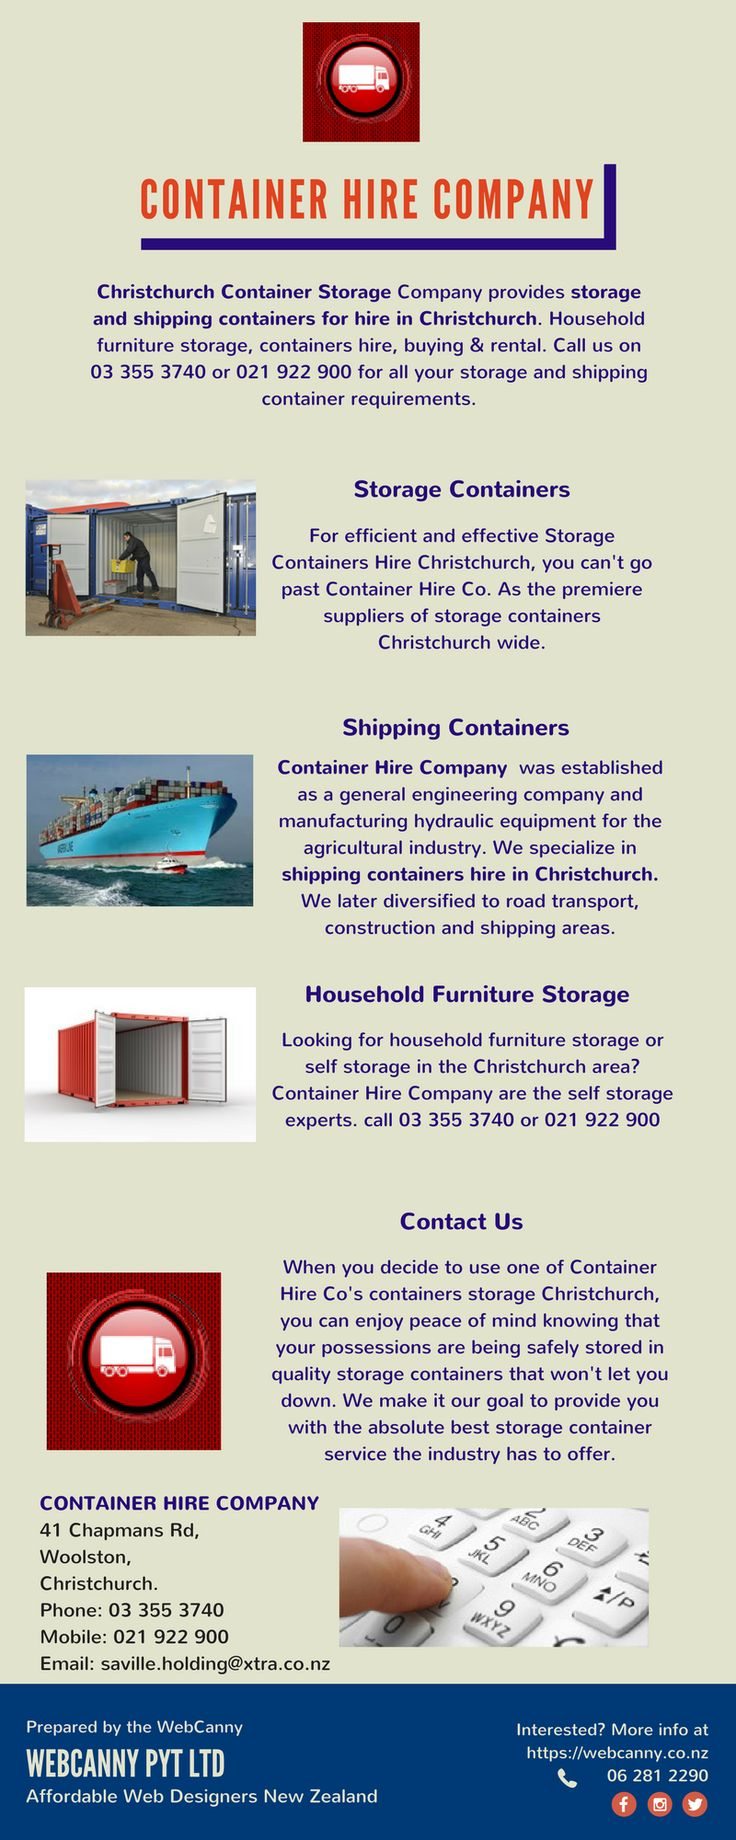 Christchurch Container Storage Company provides storage and shipping containers for hire in Christchurch. Household furniture storage, containers hire, buying & rental. Call us on 03 355 3740 or 021 922 900 for all your storage and shipping container requirements.